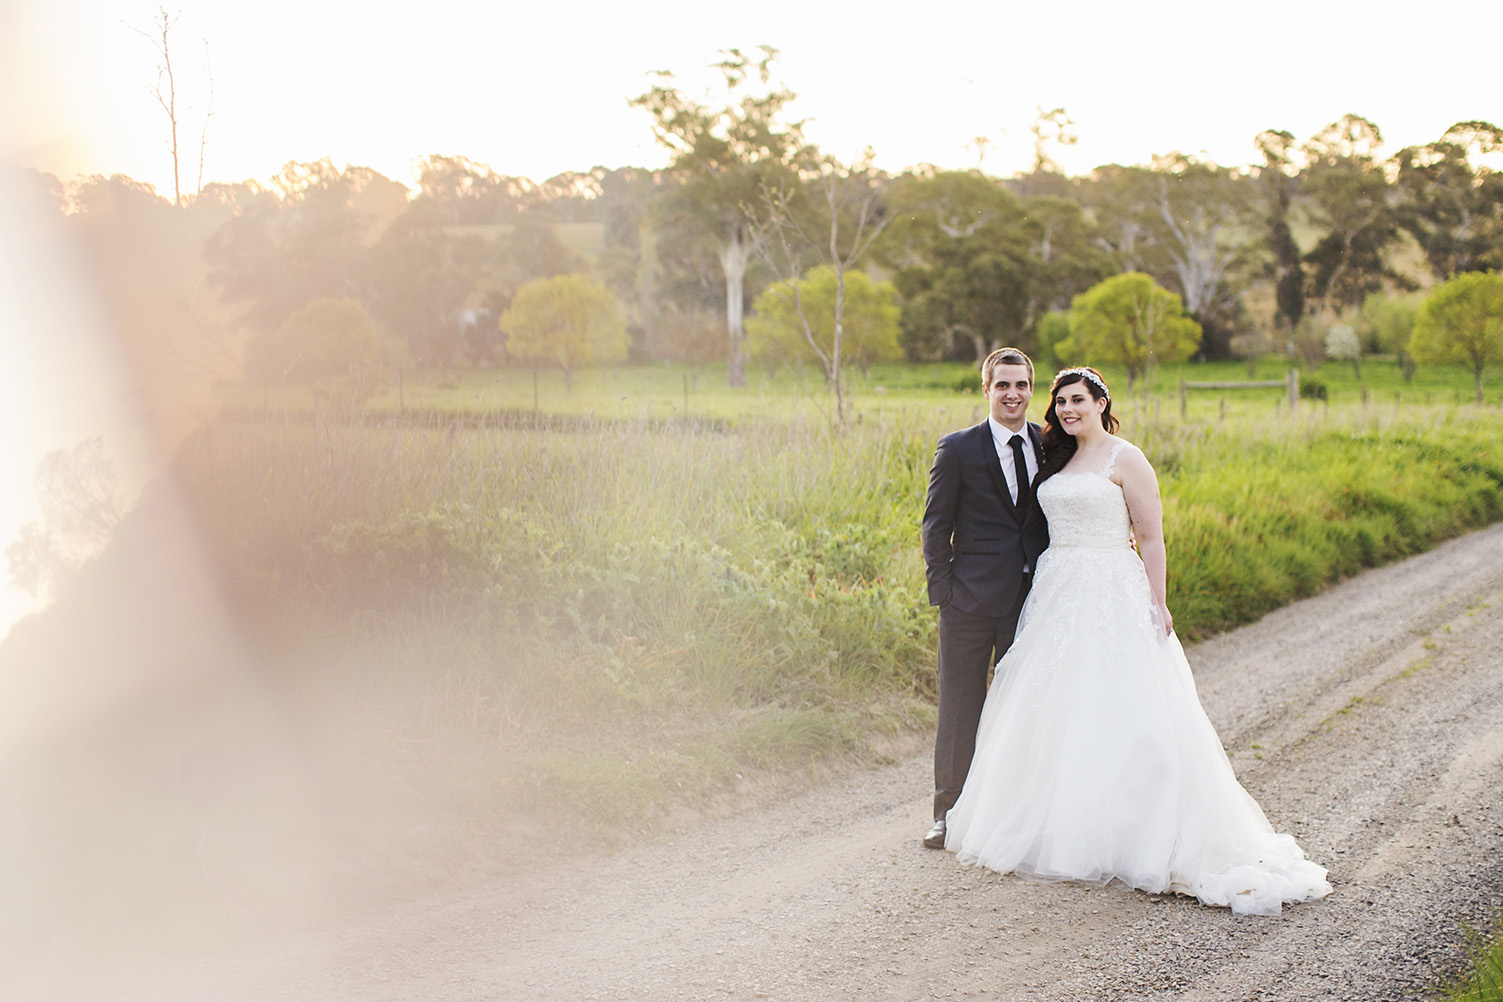 Gorgeous Al Ru Farm Wedding 65.jpg